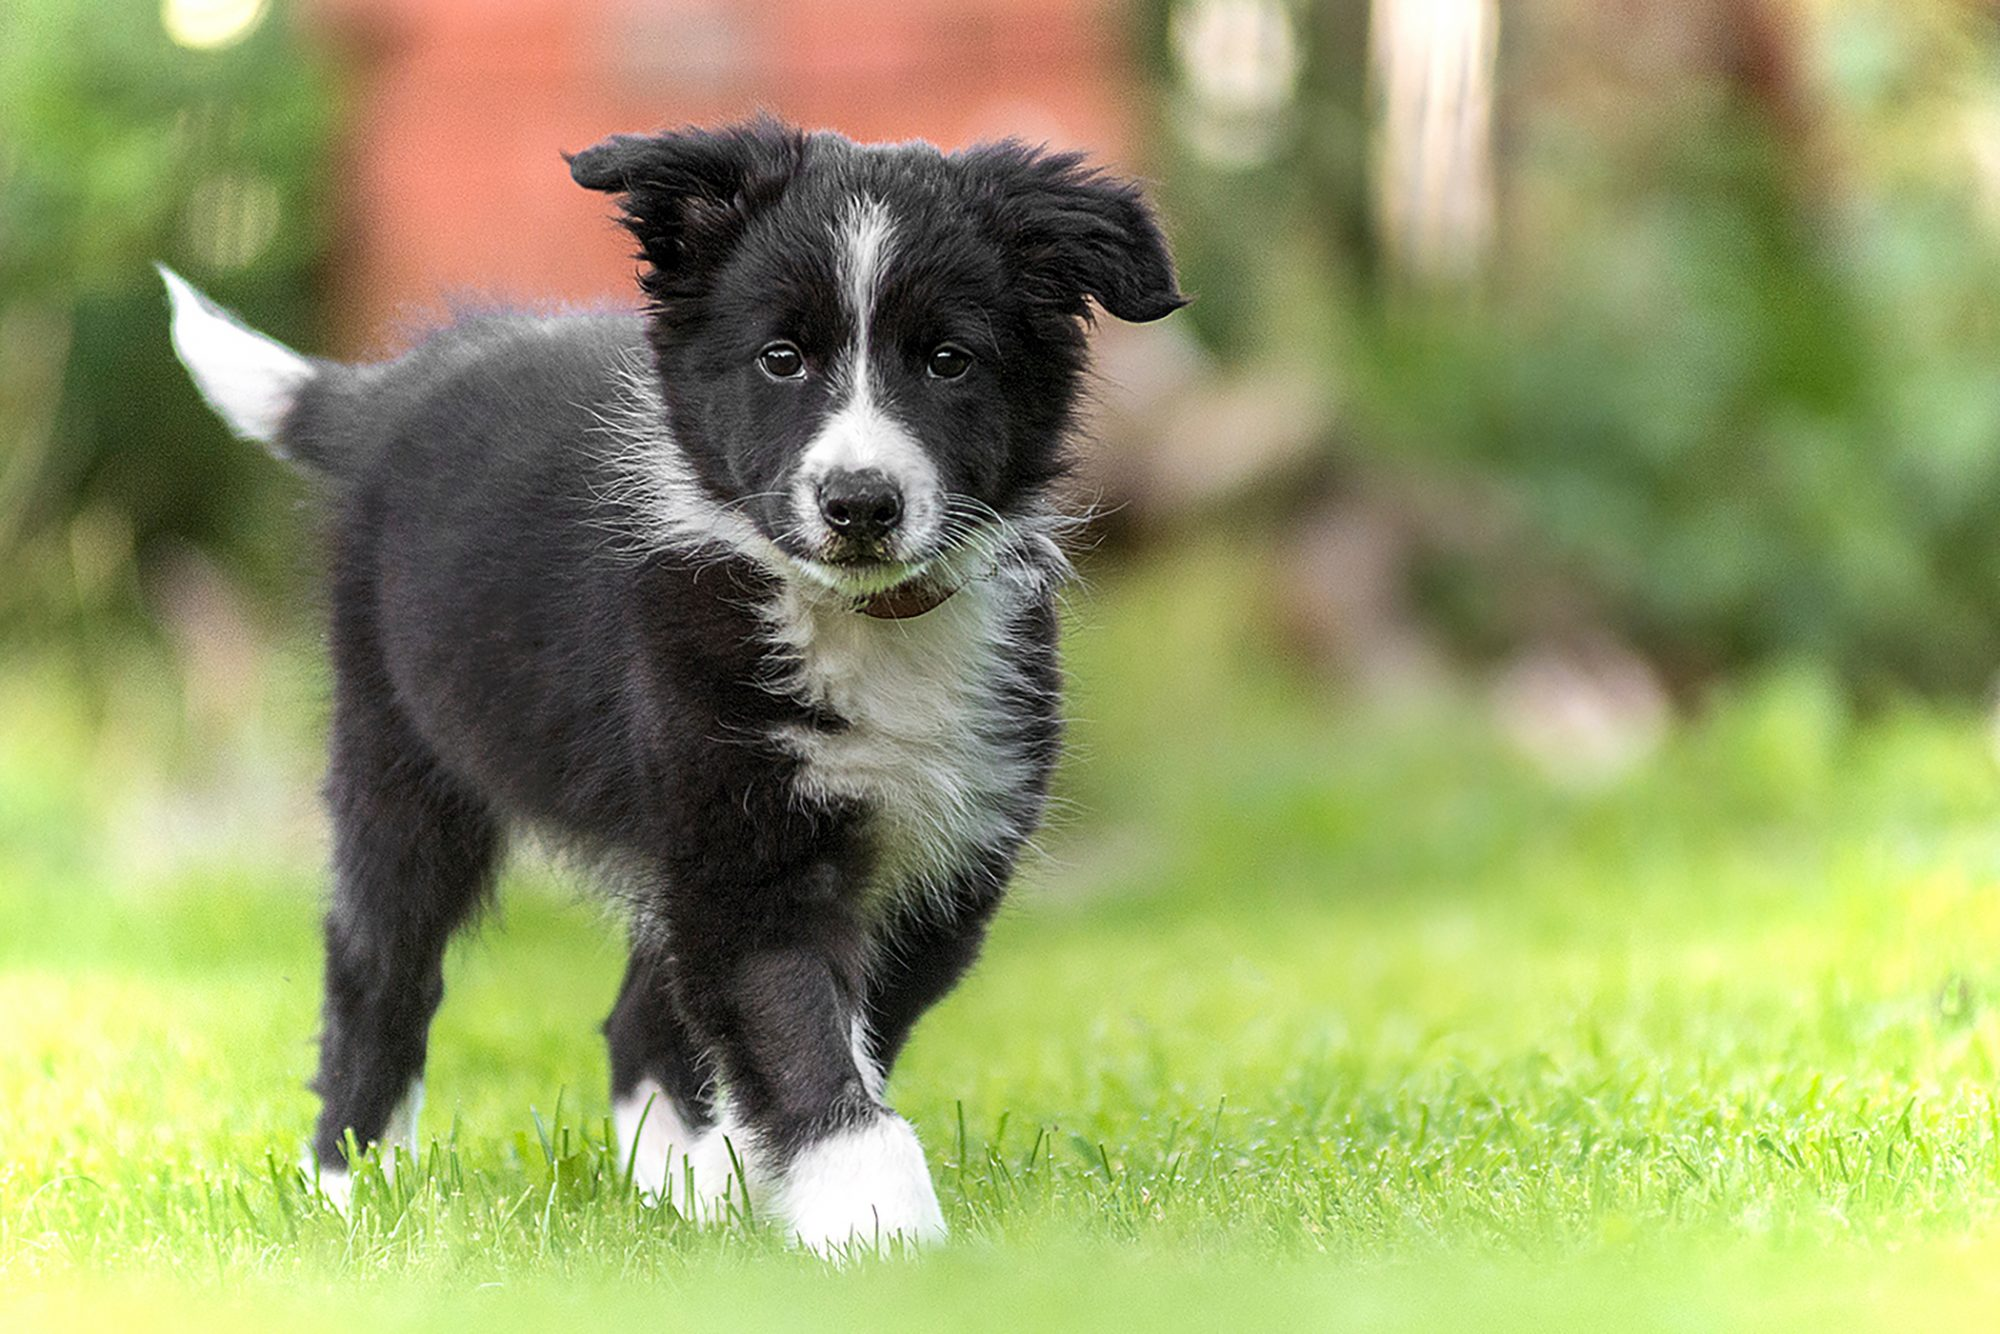 border collie puppy walking in grass